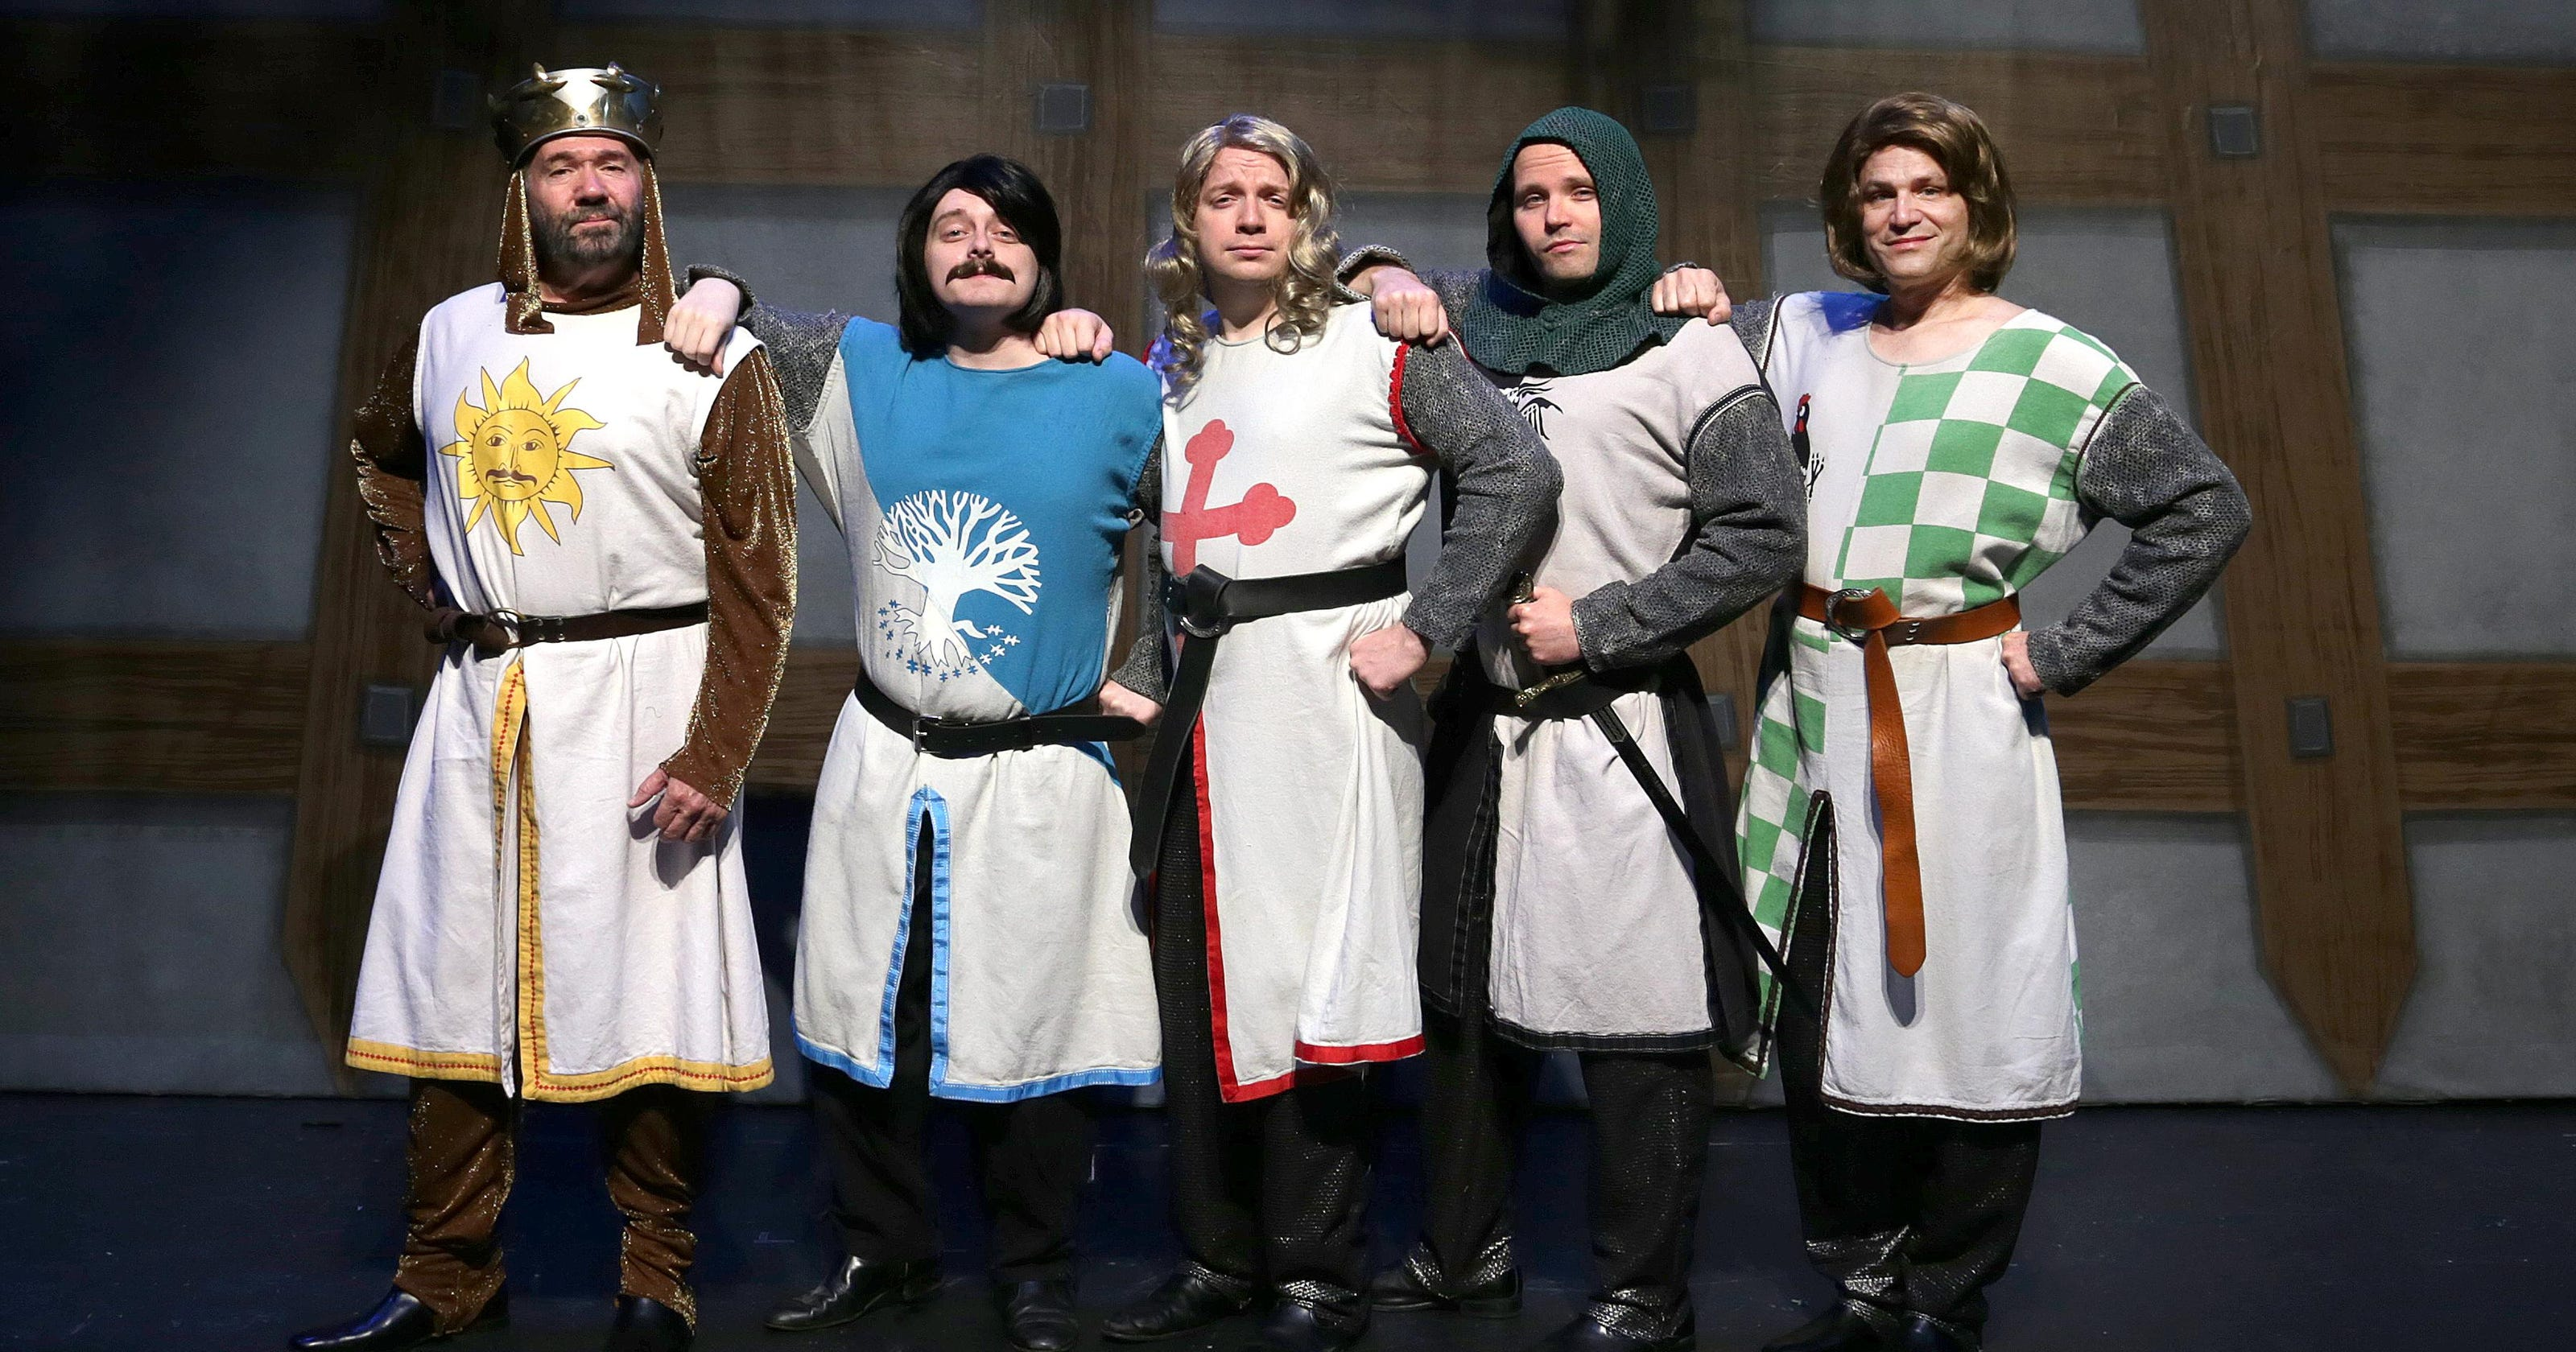 Spamalot': 9 questions for the Round Table